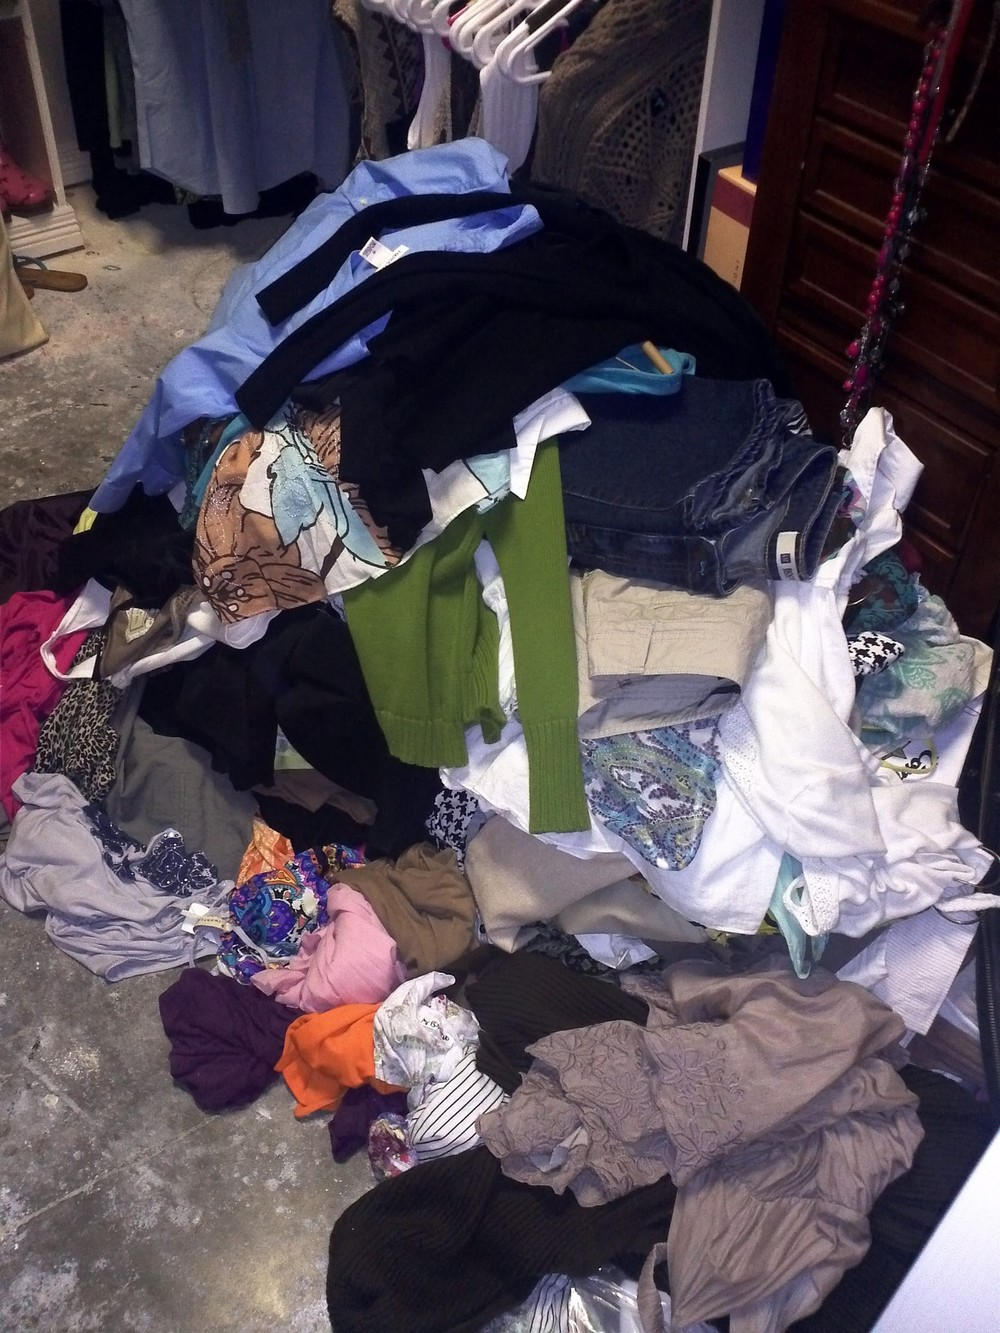 All the clothes my client valiantly tossed out!